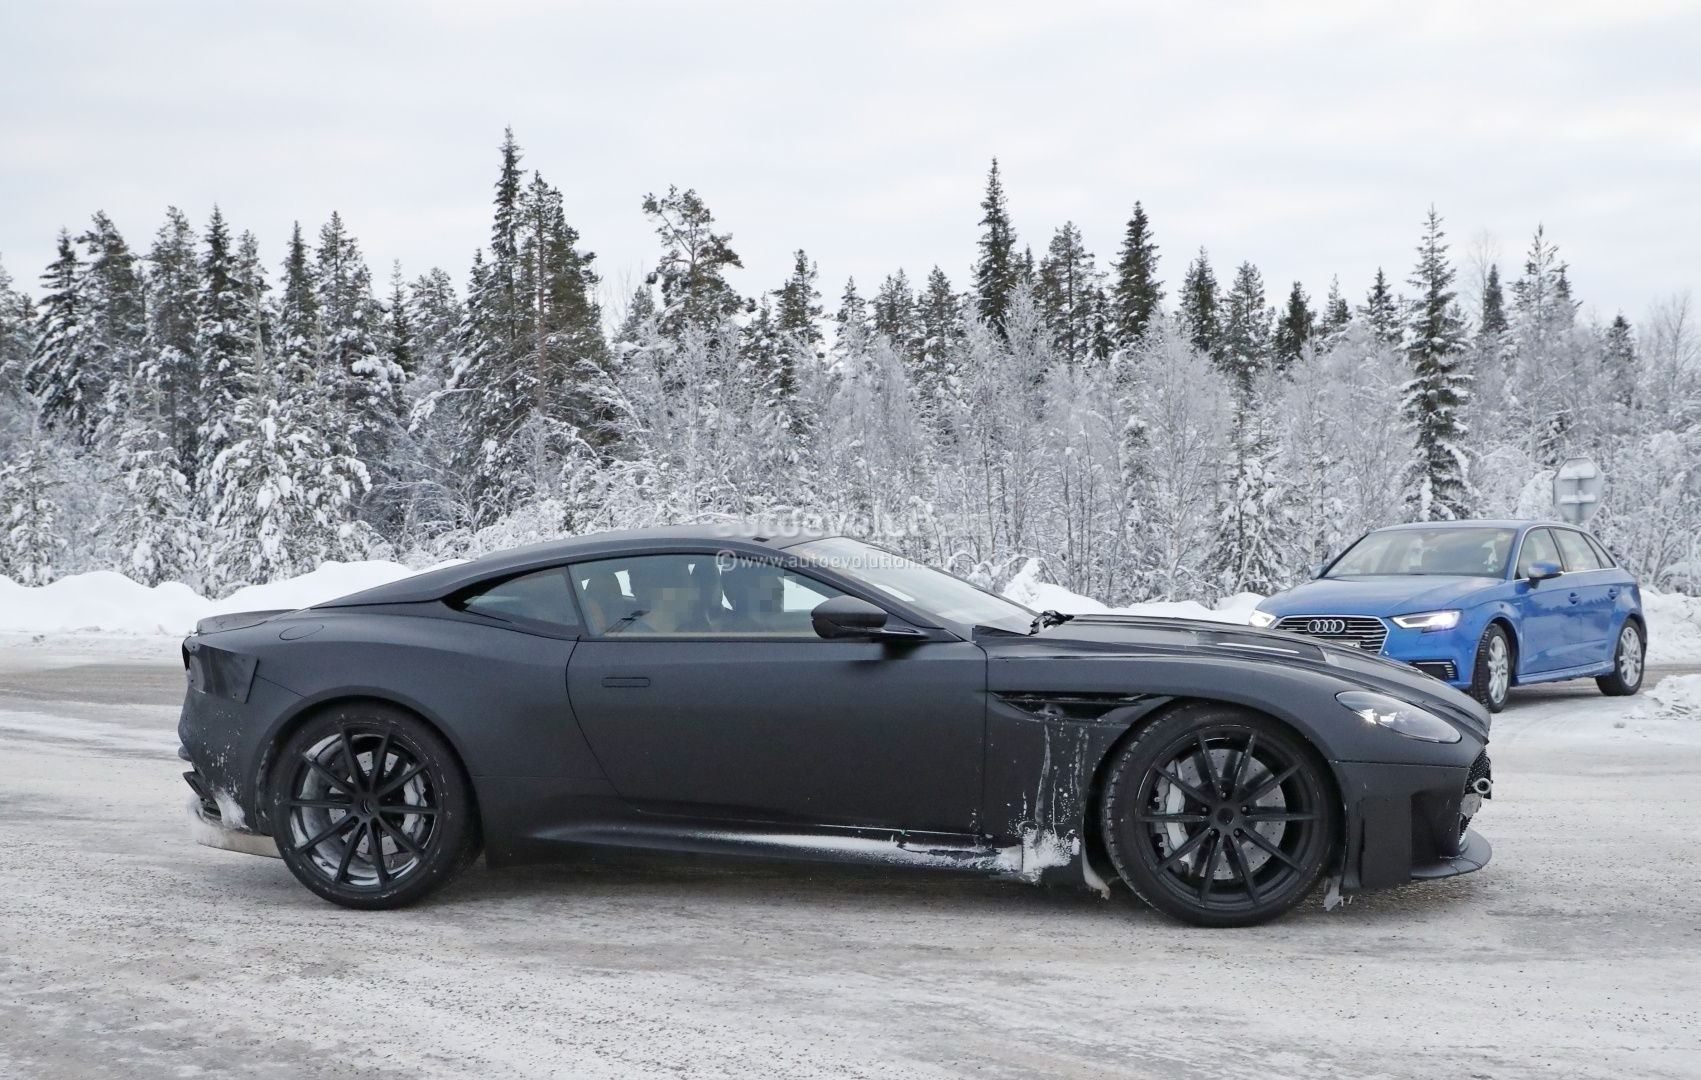 Aston Martin May Even Have One Or Two Surprises In Store For Geneva